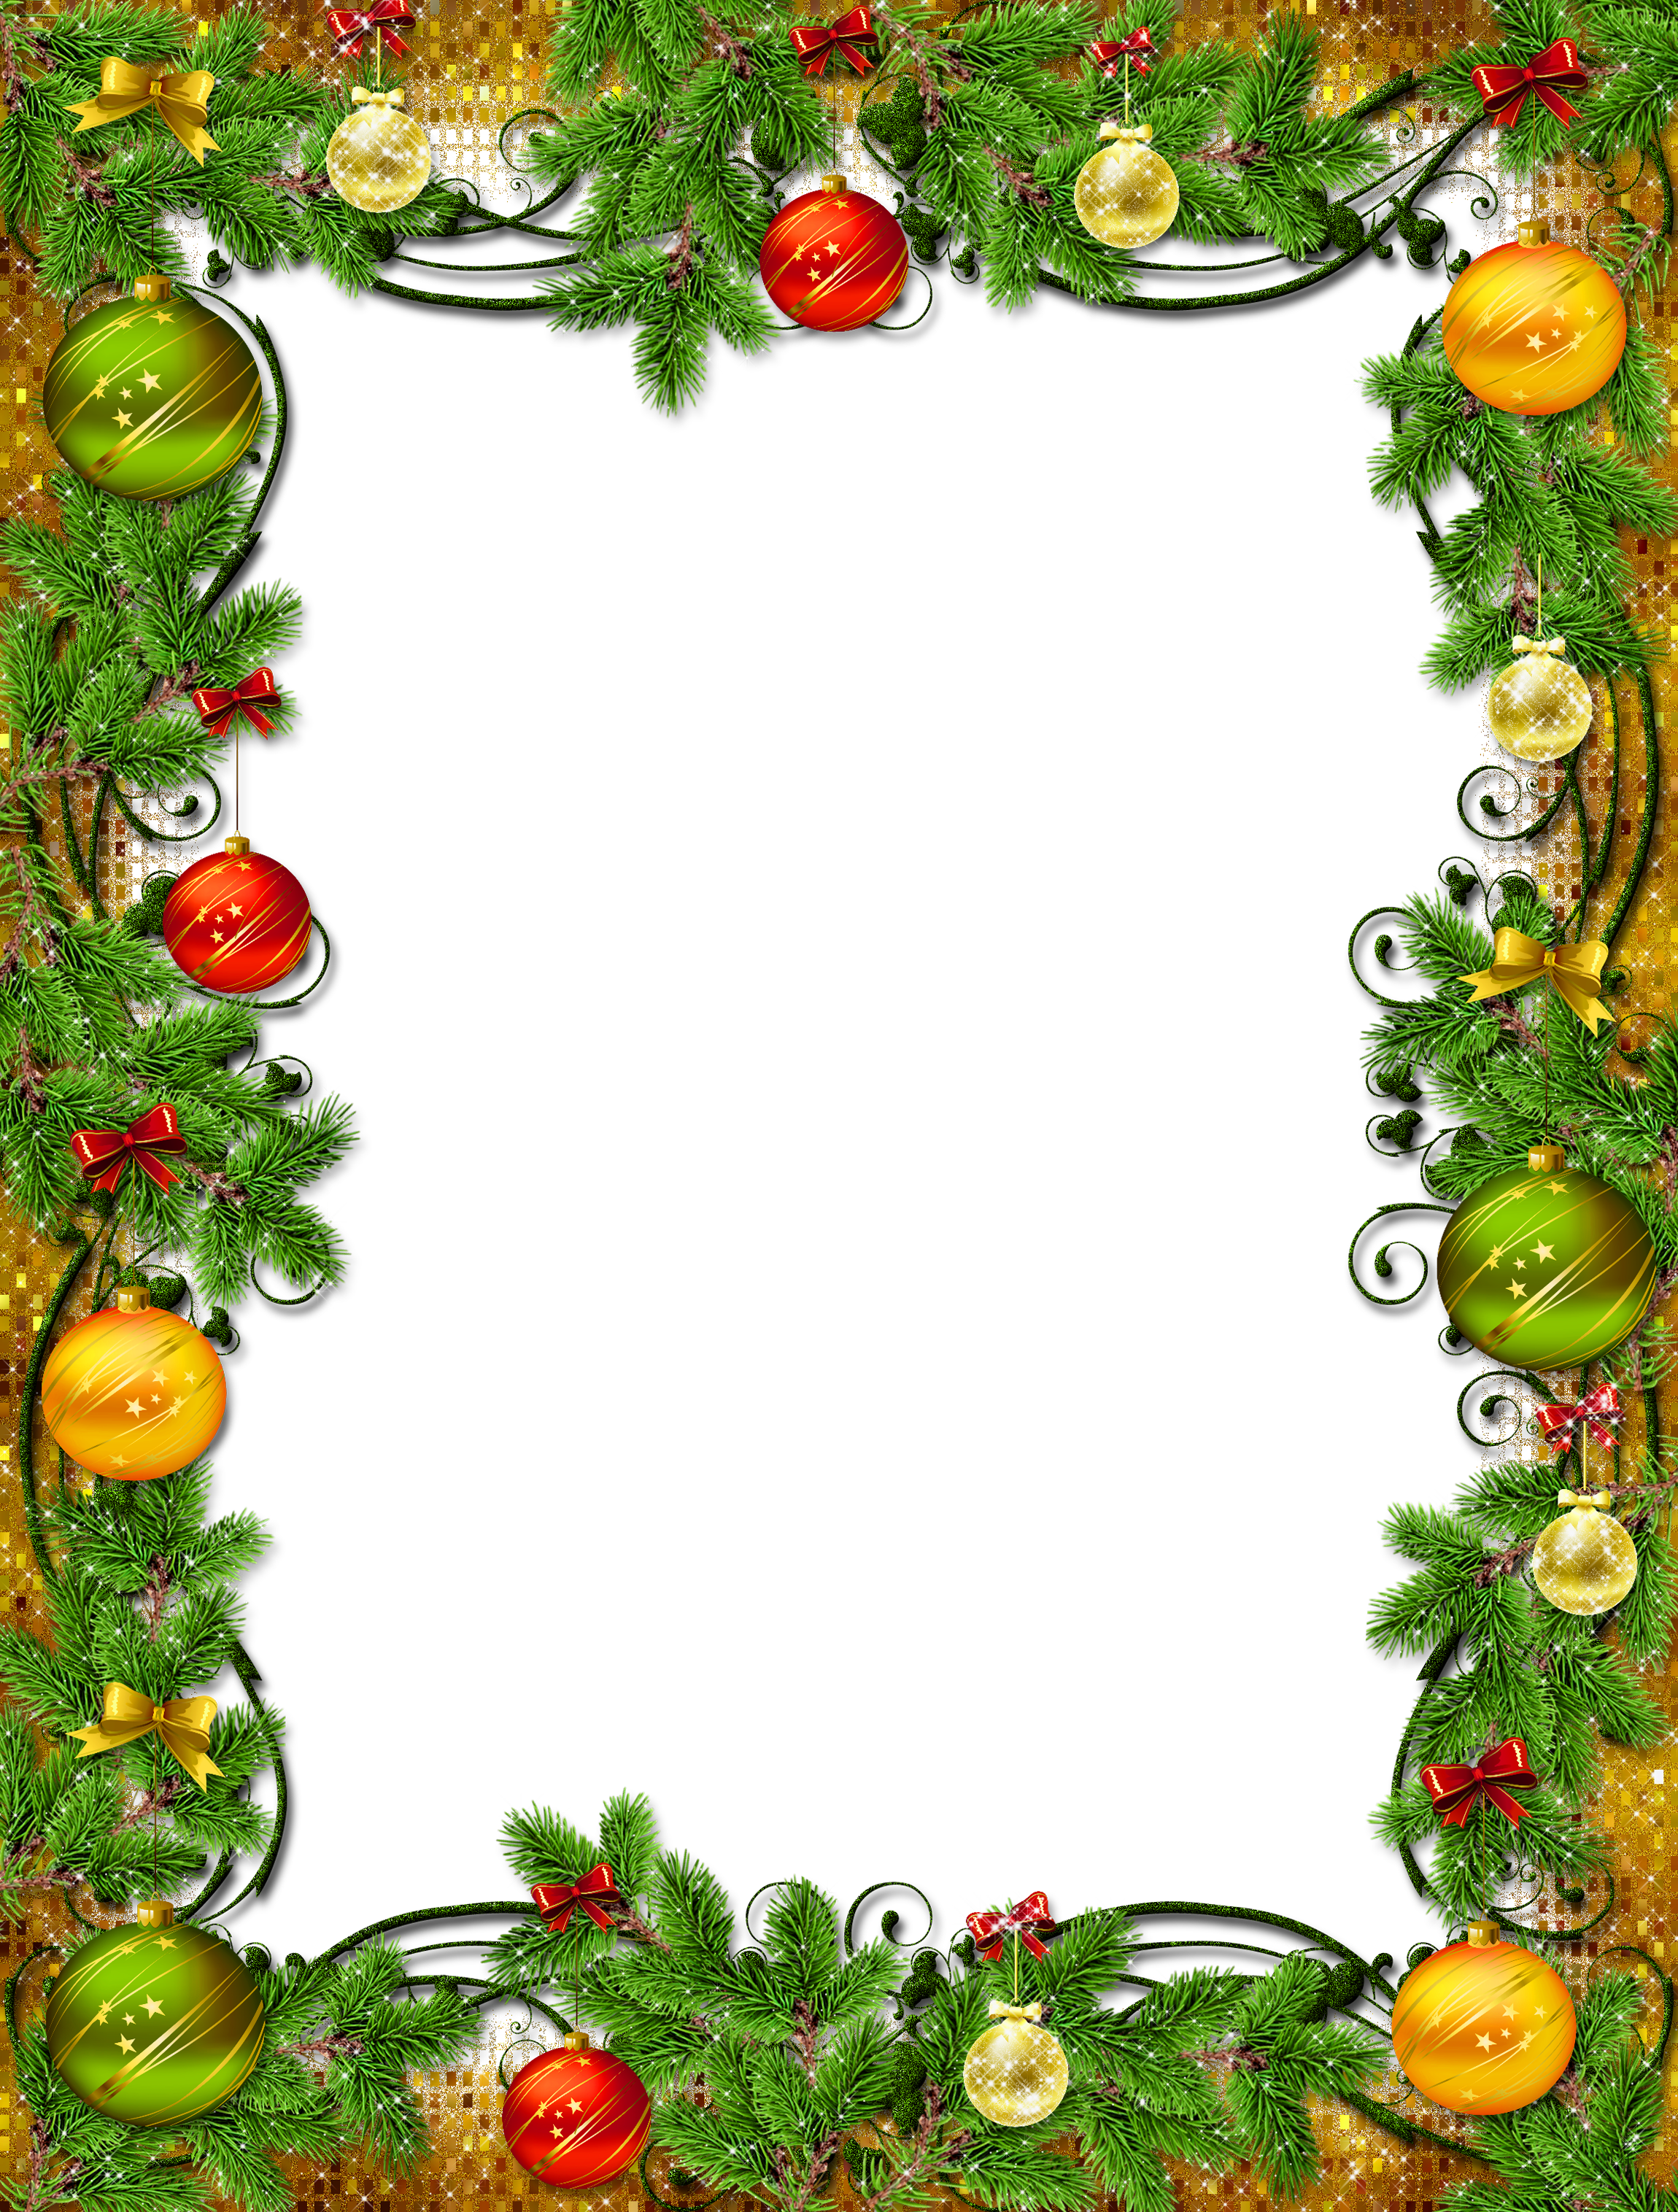 Tropical christmas clipart freeuse library Christmas decoration PNG | Transparent images | Pinterest ... freeuse library